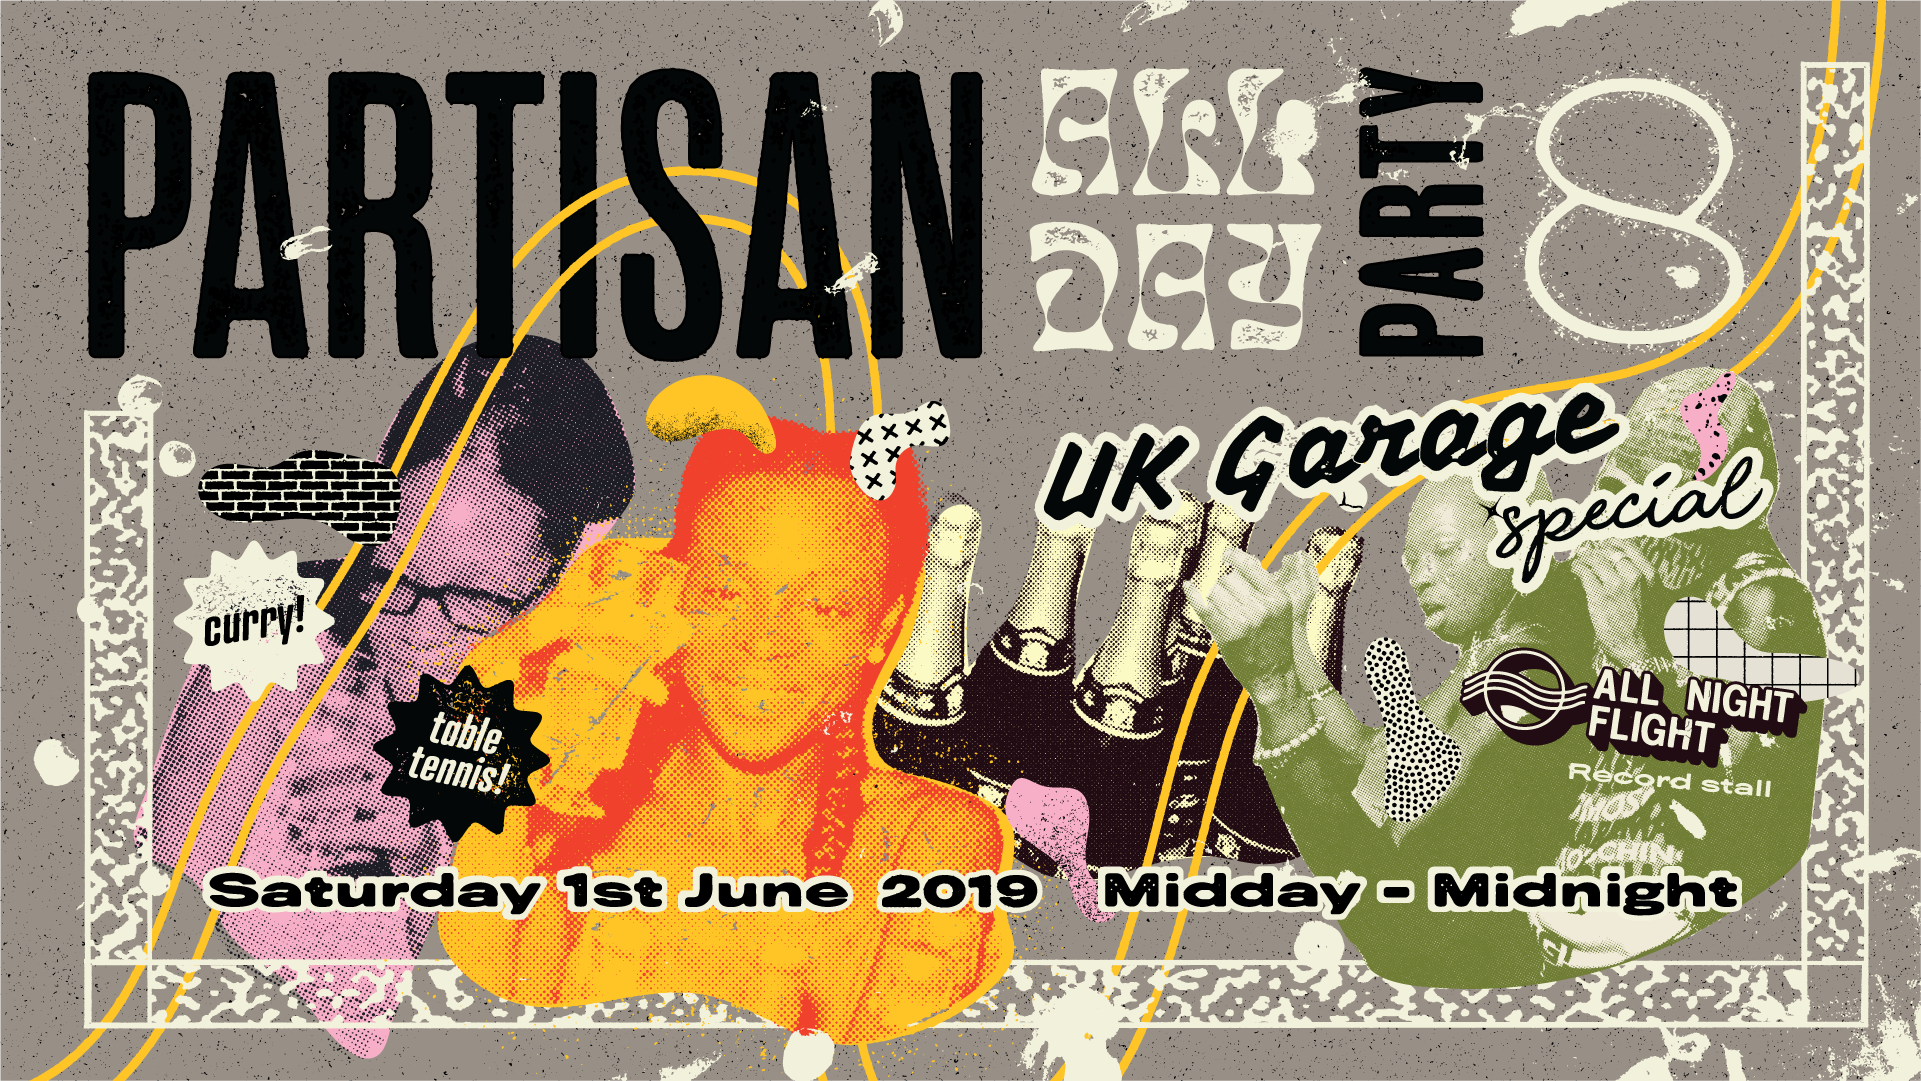 UPCOMING: Partisan All Day Party #8 – UK Garage special! – June 1st 2019